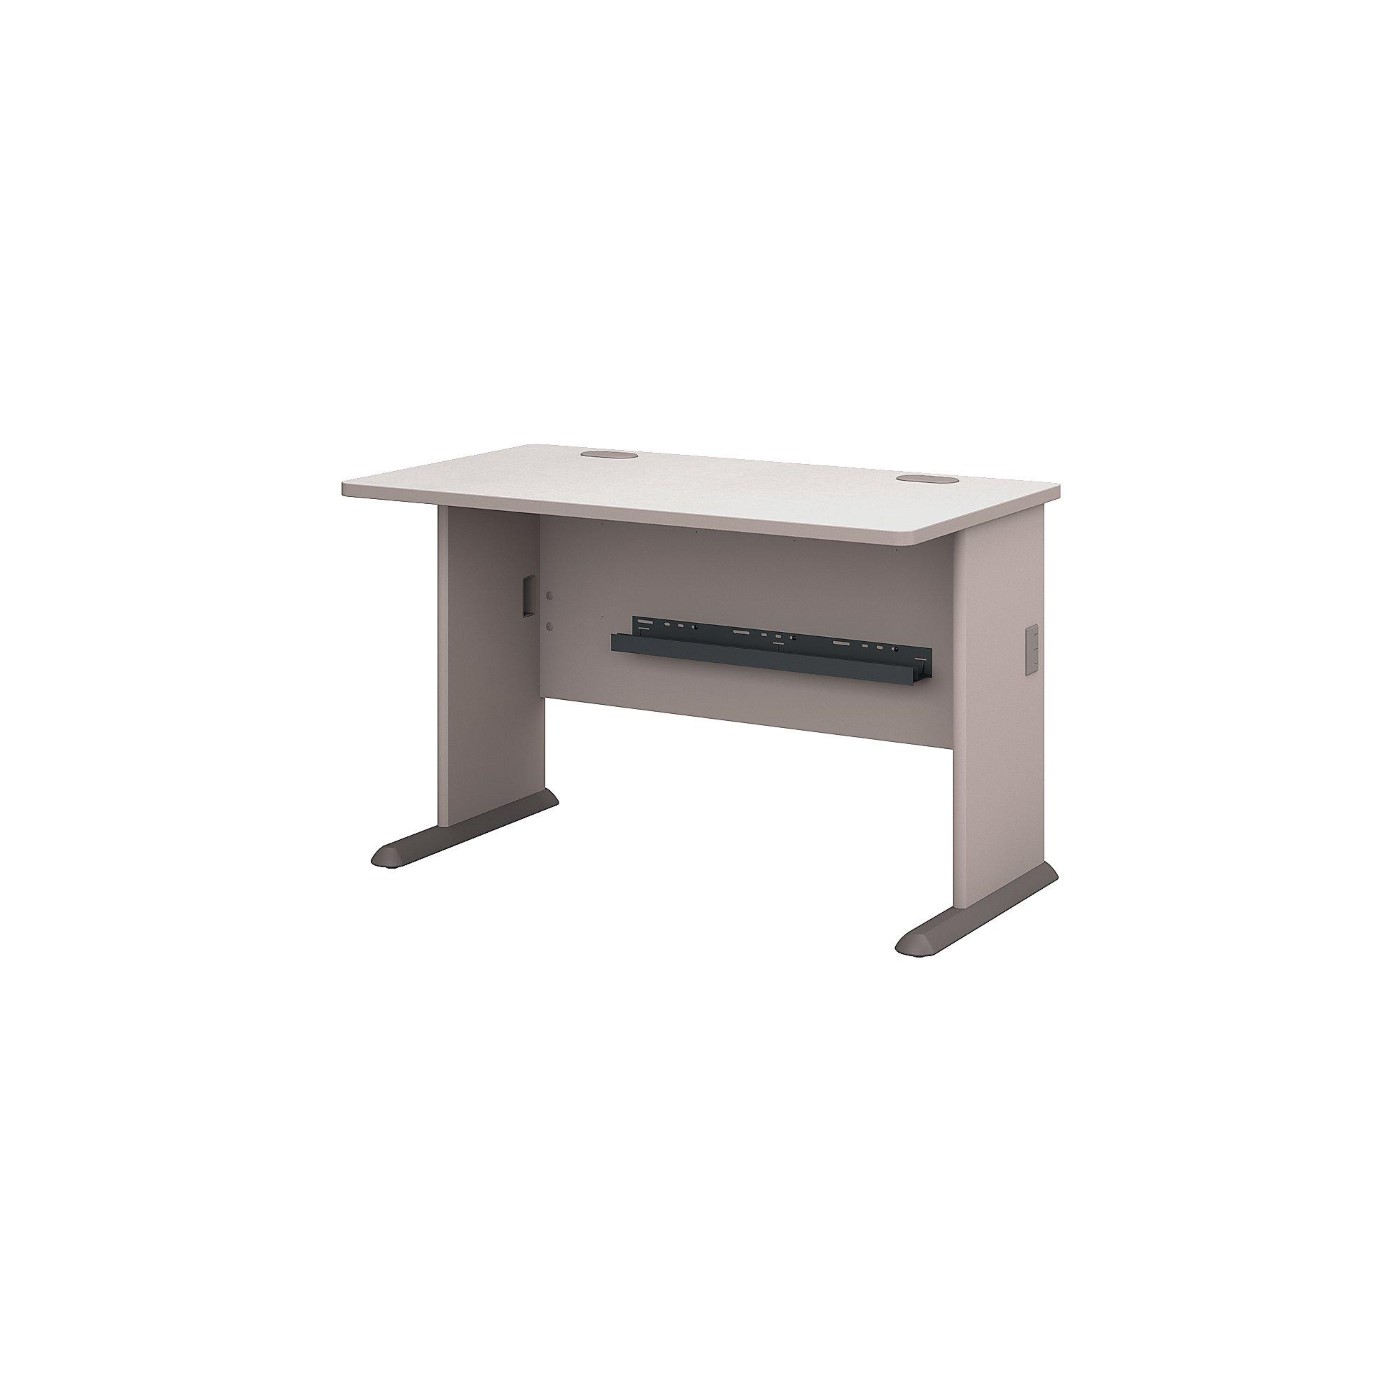 BUSH BUSINESS FURNITURE SERIES A 48W DESK. FREE SHIPPING  VIDEO BELOW.